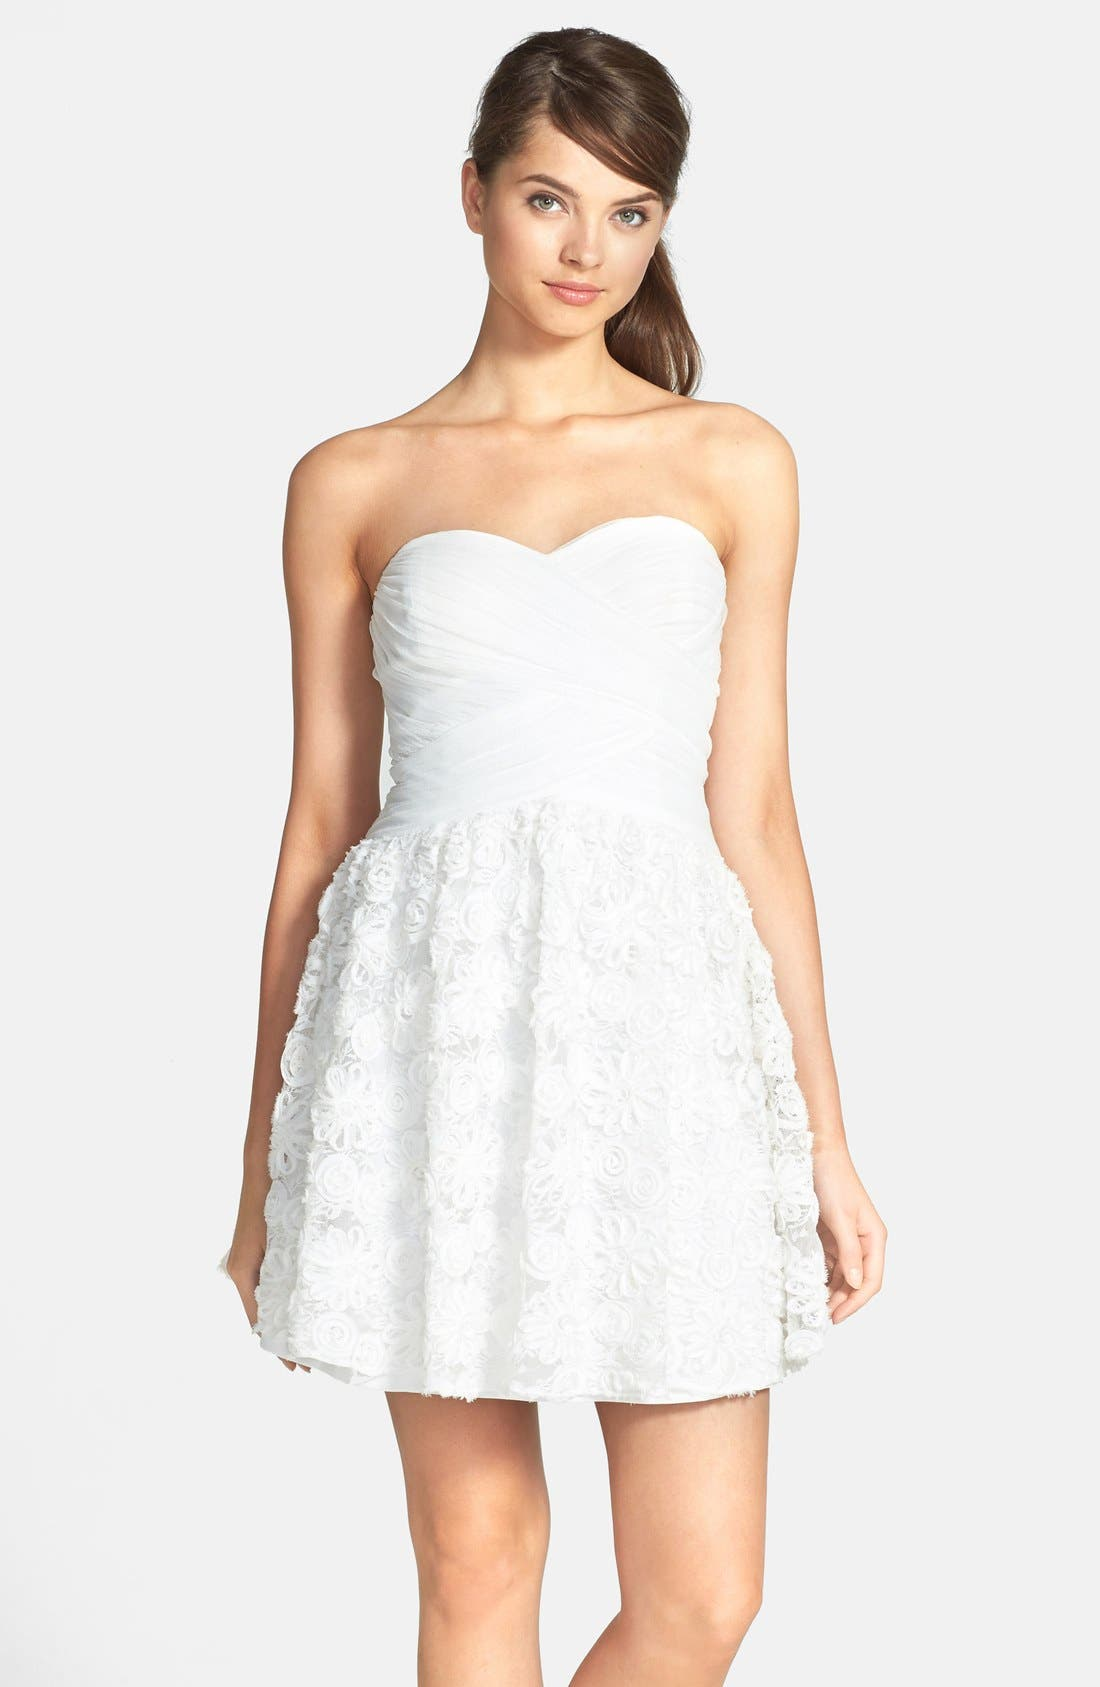 Main Image - Hailey by Adrianna Papell Strapless Floral Embroidered Dress